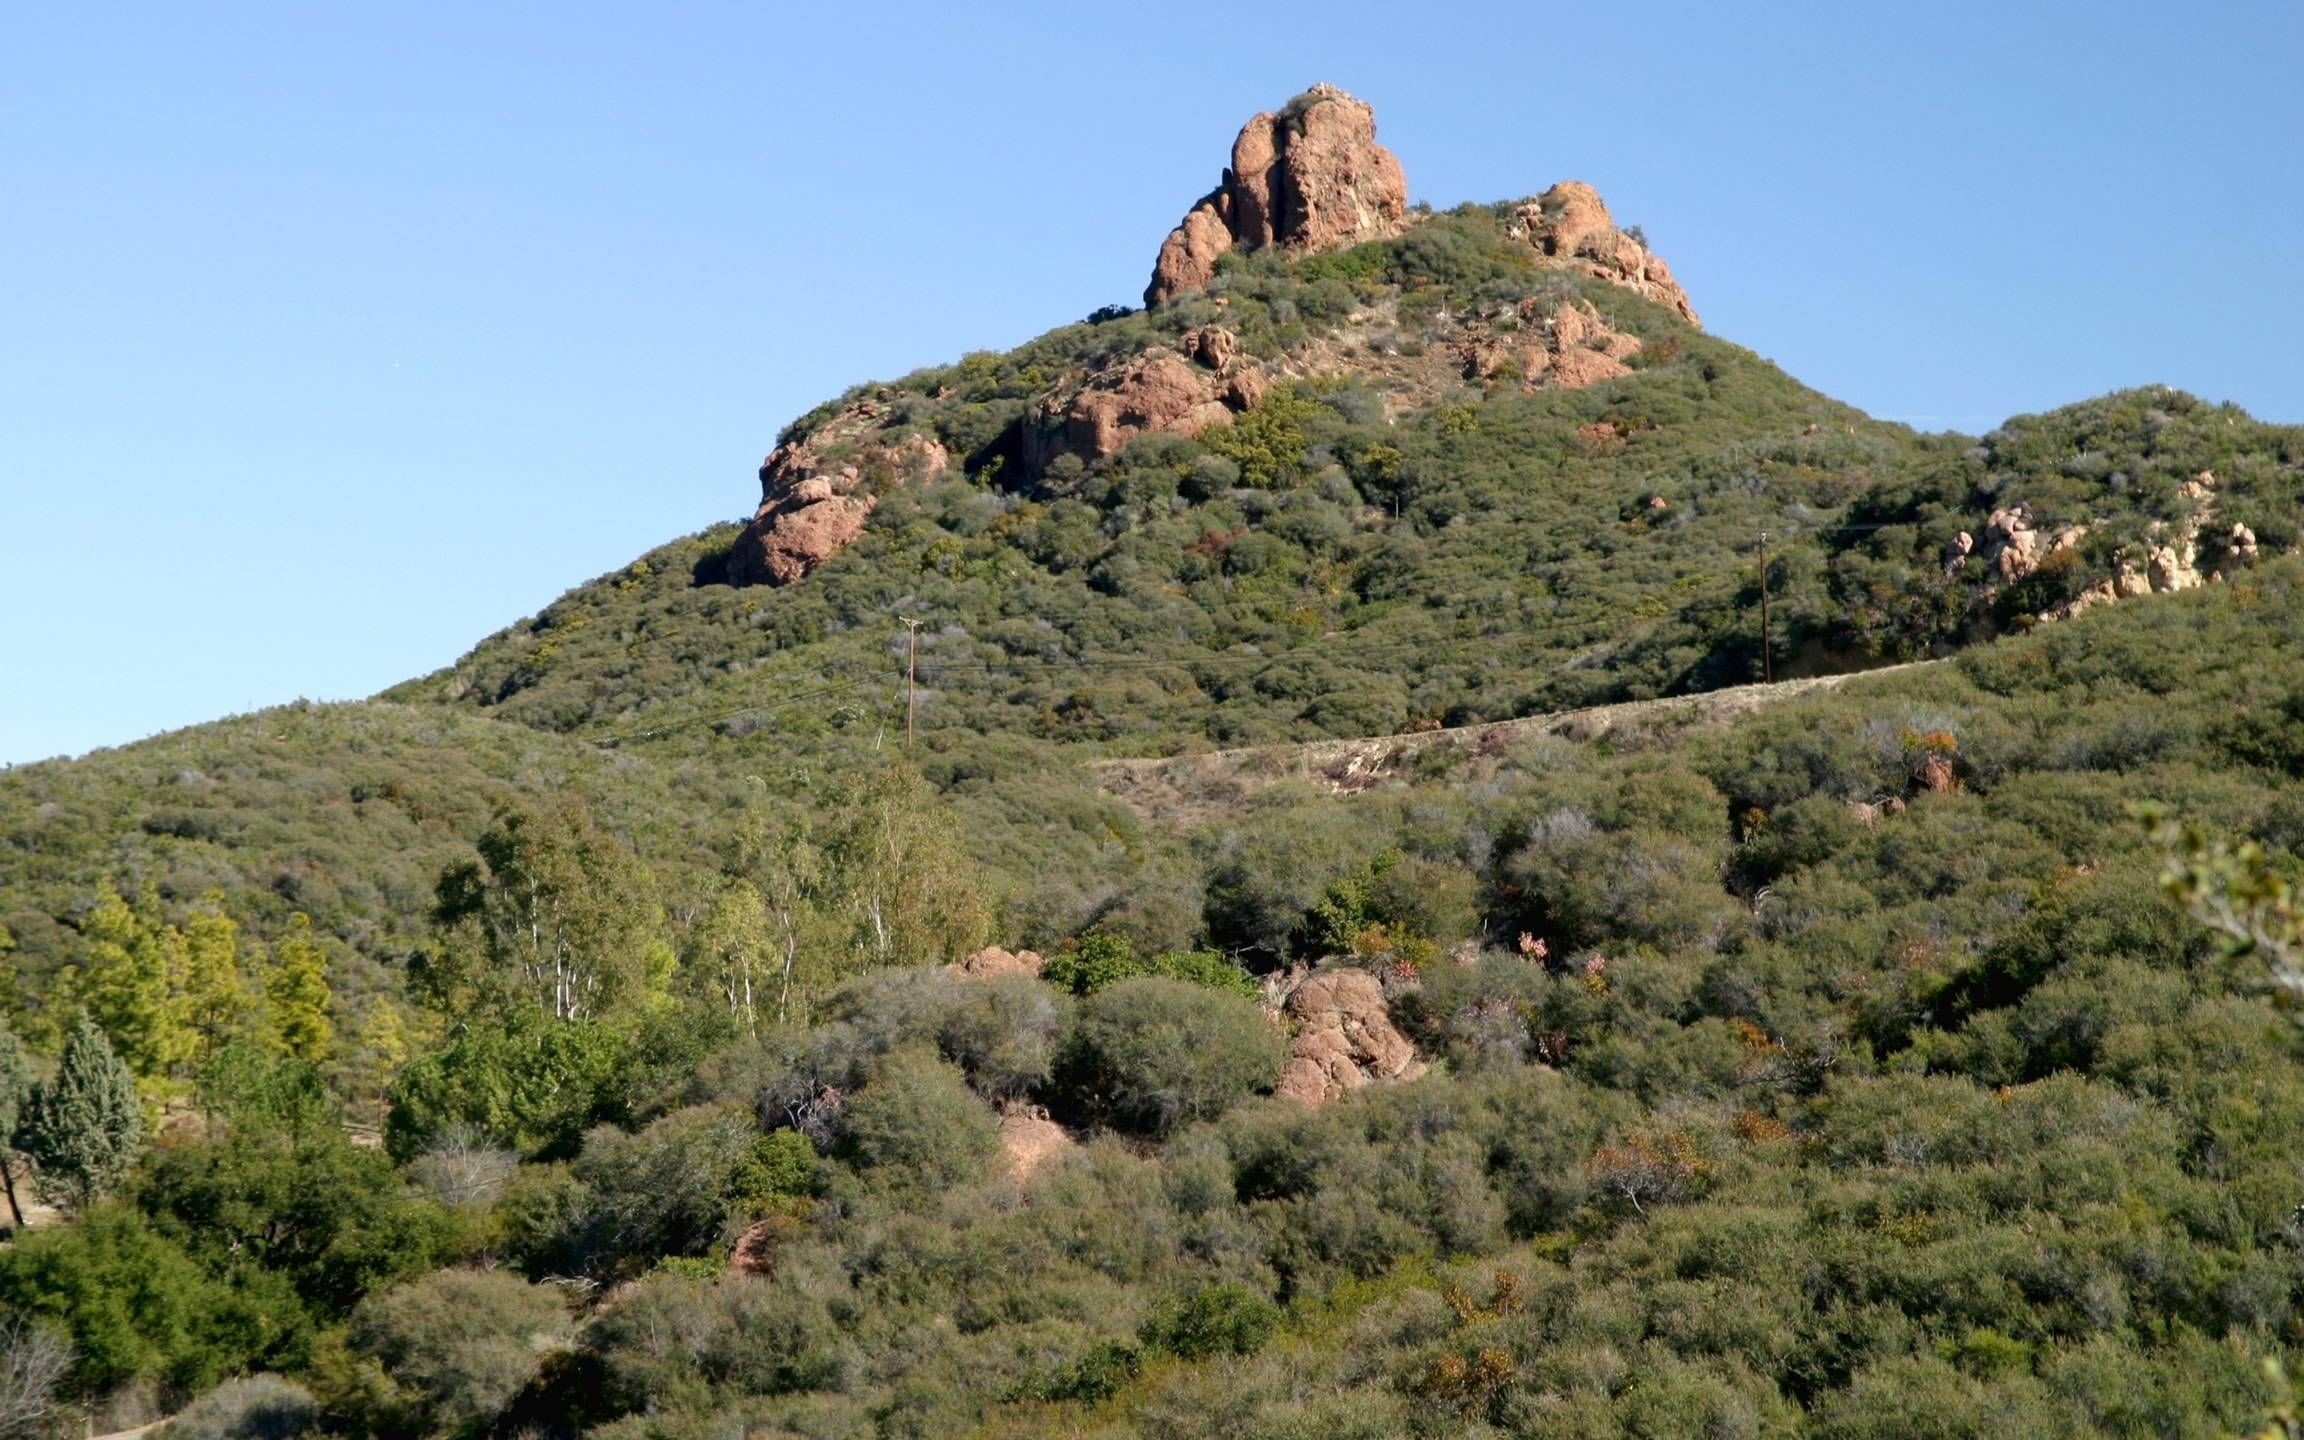 A view off the Backbone Trail near Sandstone Peak is shown in a National Park Service photo.